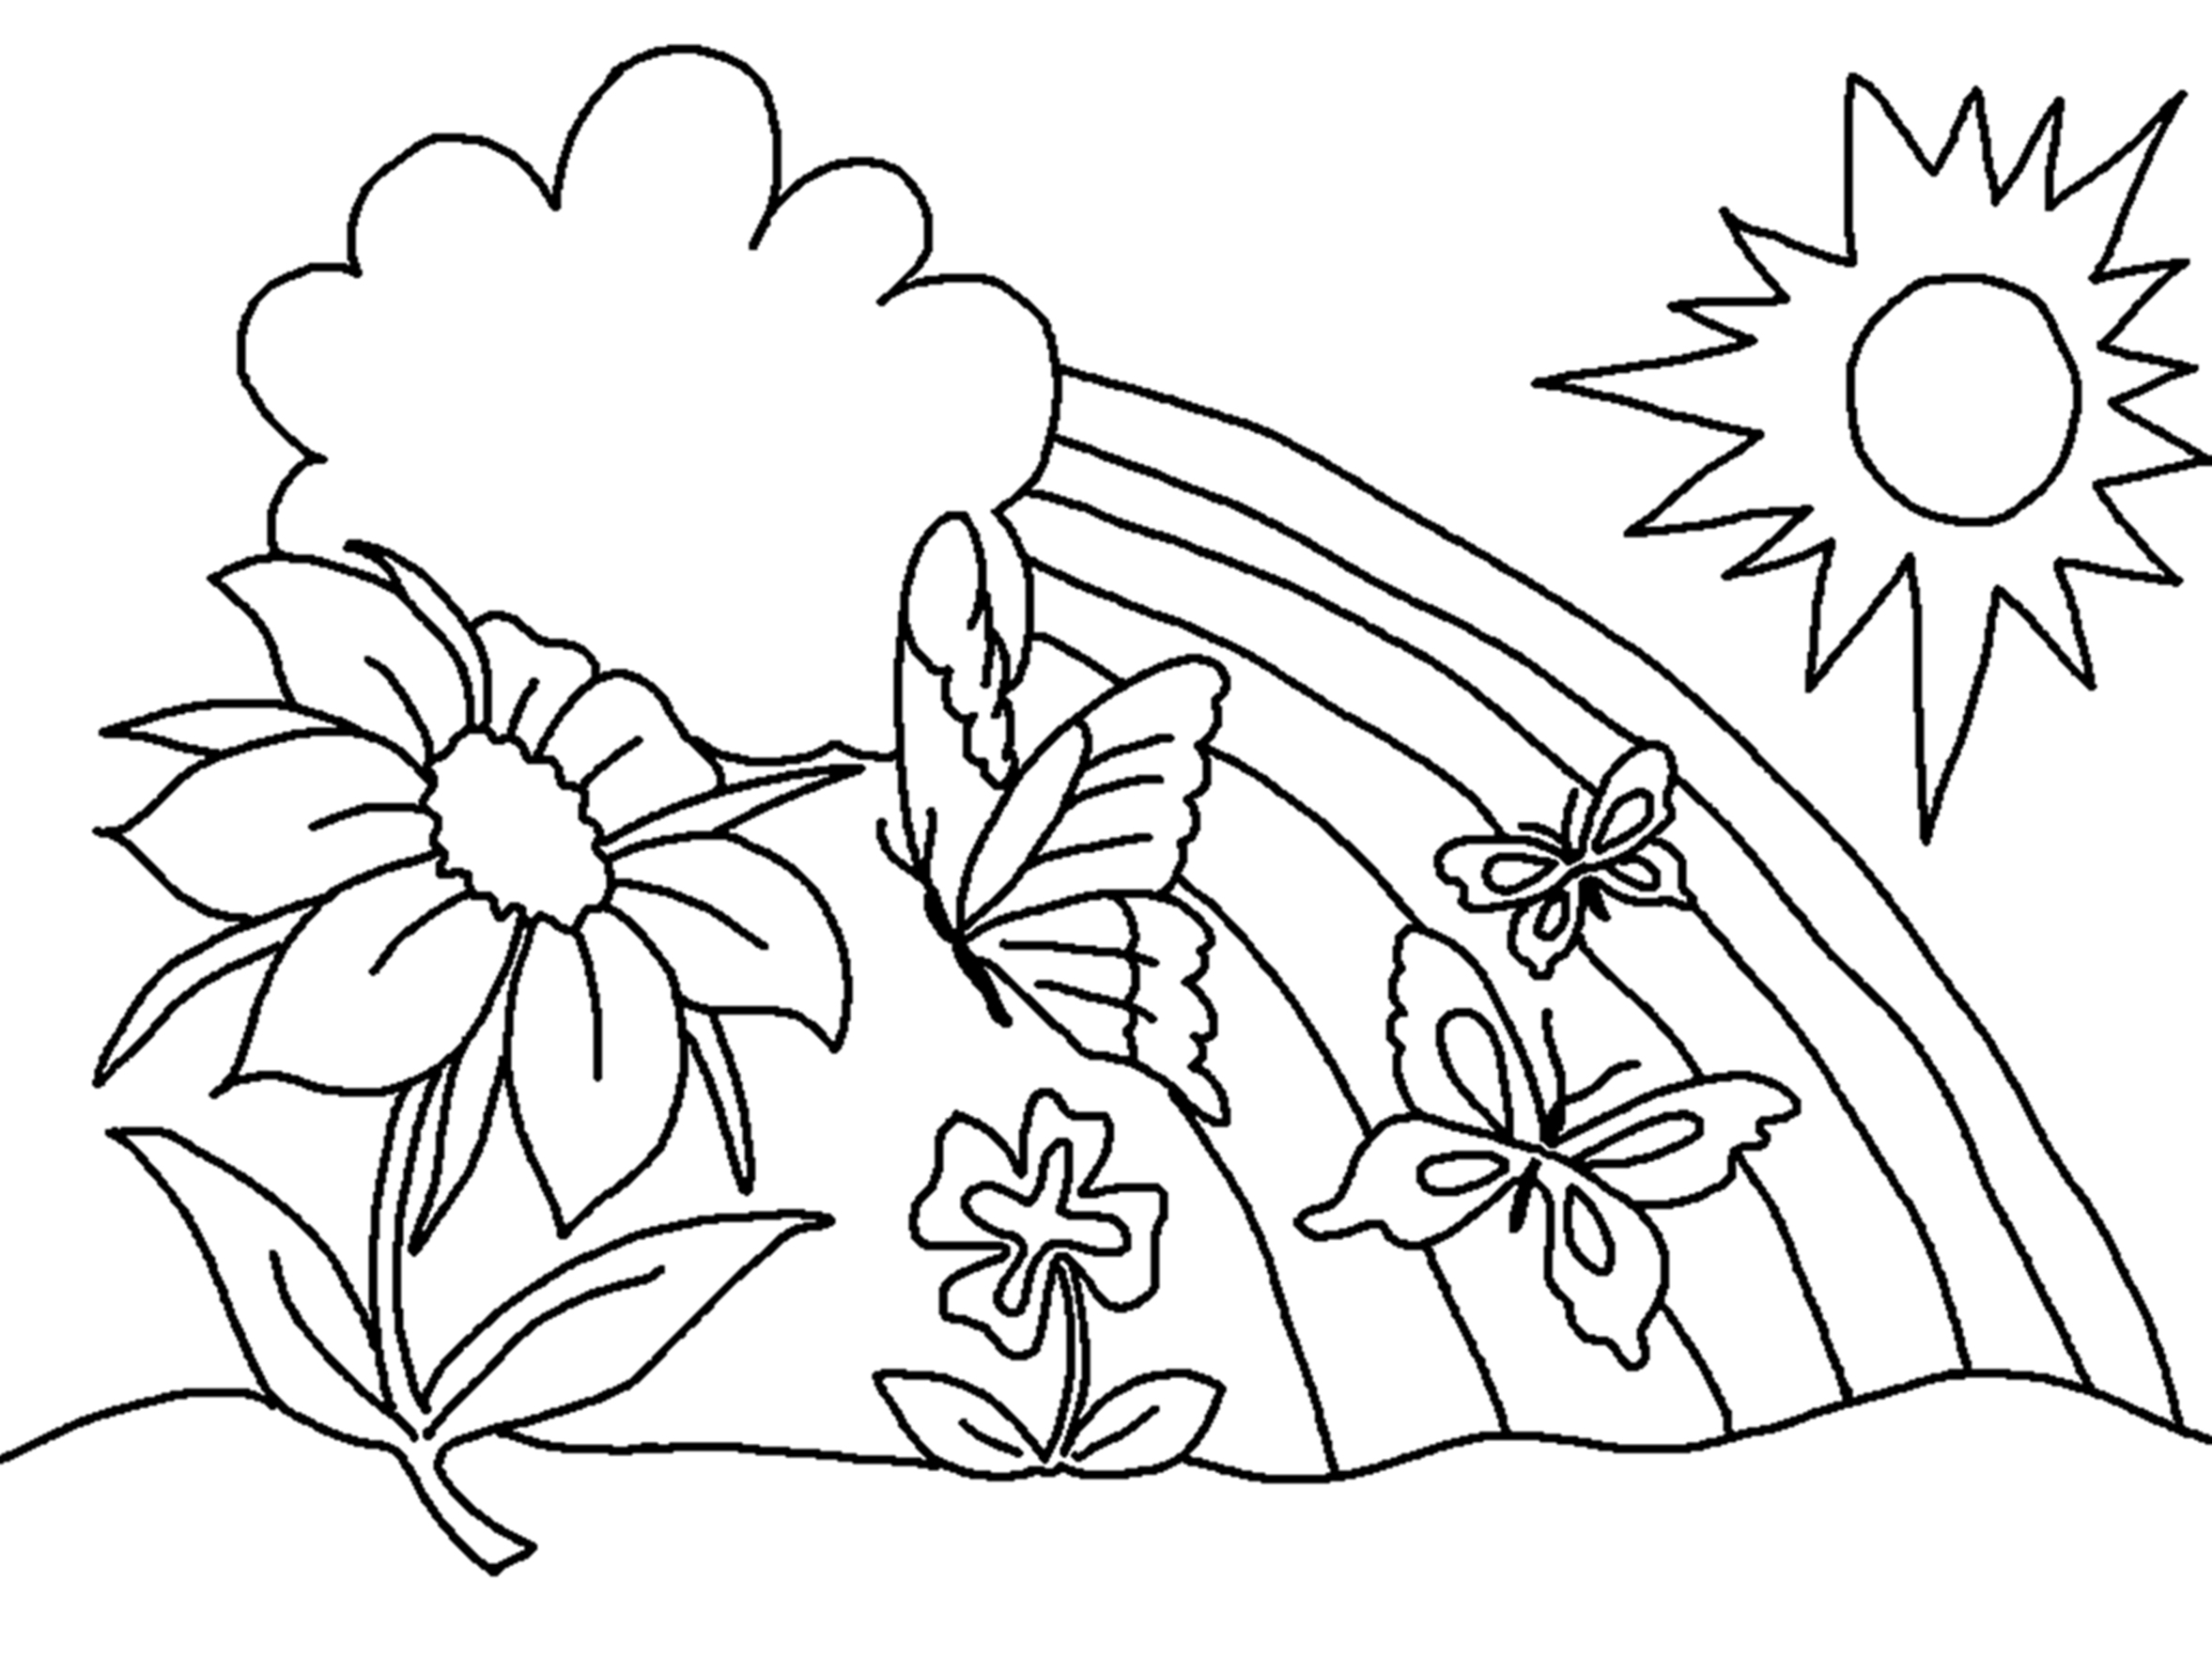 Spring Flowers Coloring Pages Free Printable Flower Coloring Pages For Kids Best Coloring Pages